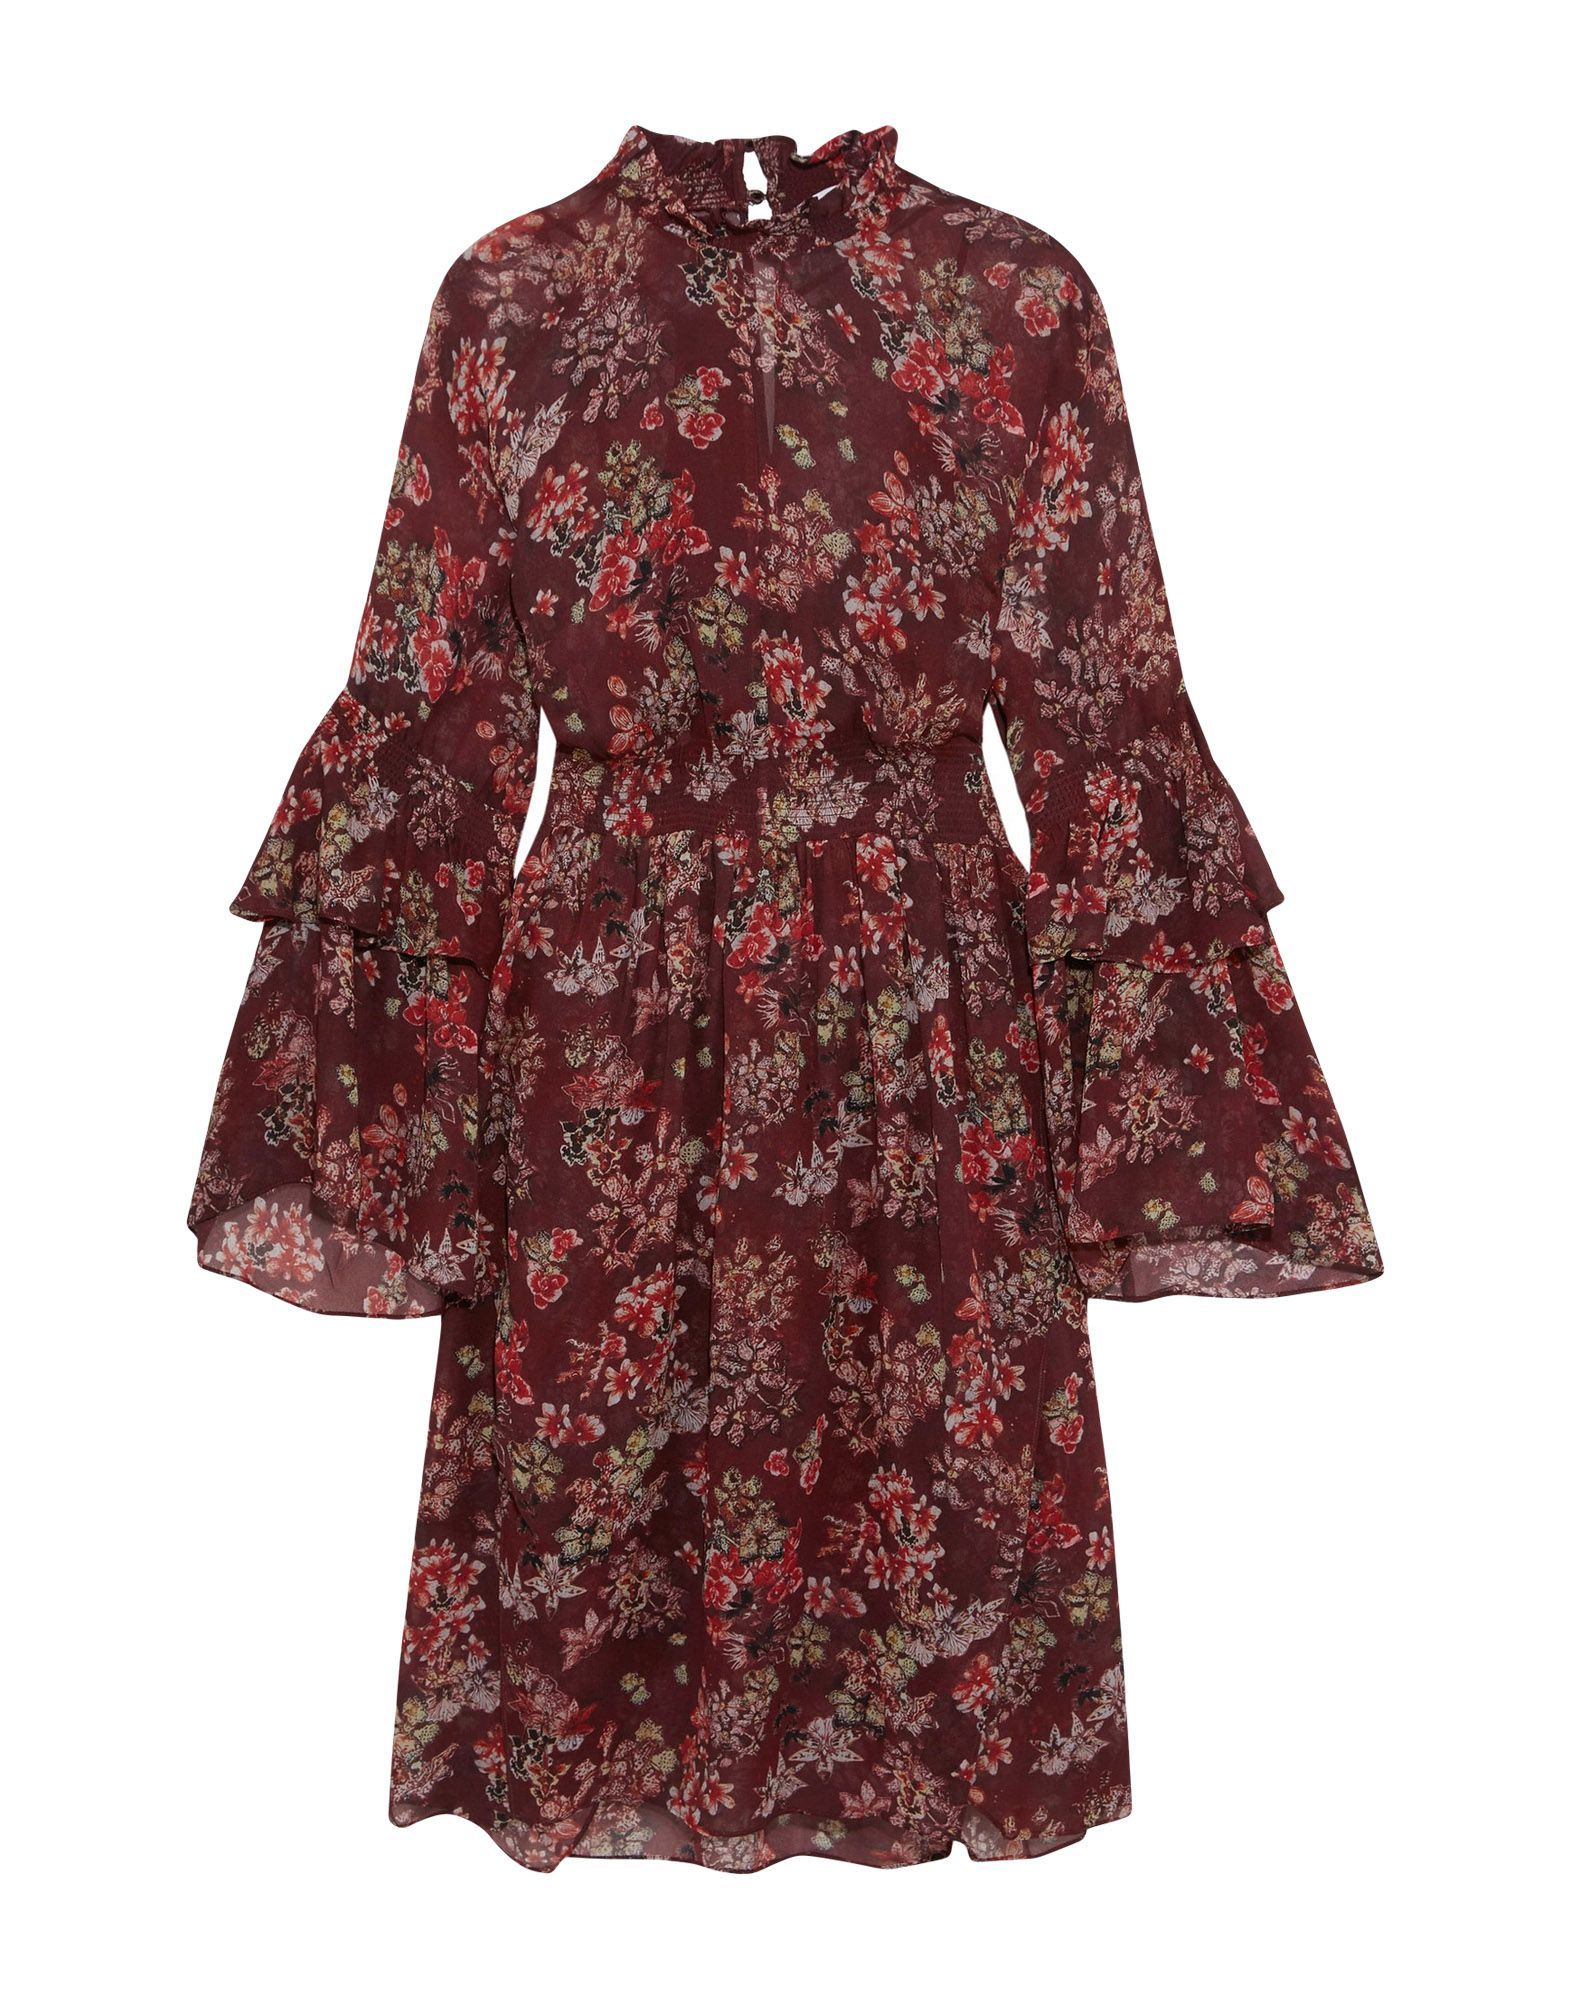 Iro Maroon Floral Print Flared Sleeve Dress